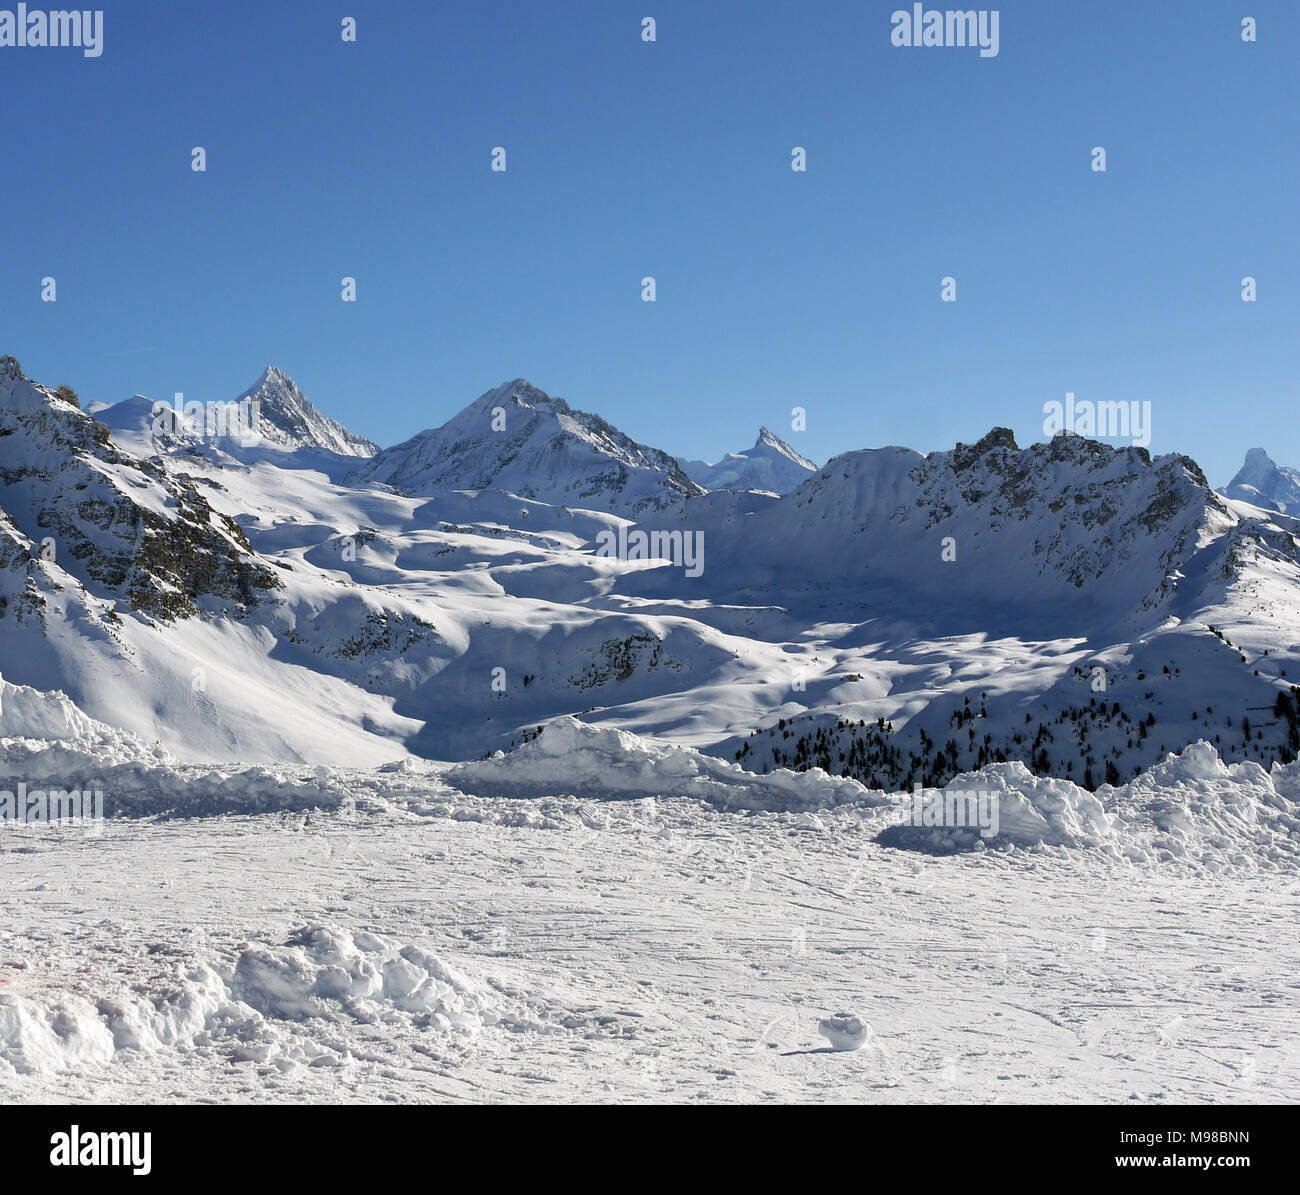 The swiss ski and snow-sport linked resort of St Luc and Chandolin in the Valais region of Switzerland Stock Photo